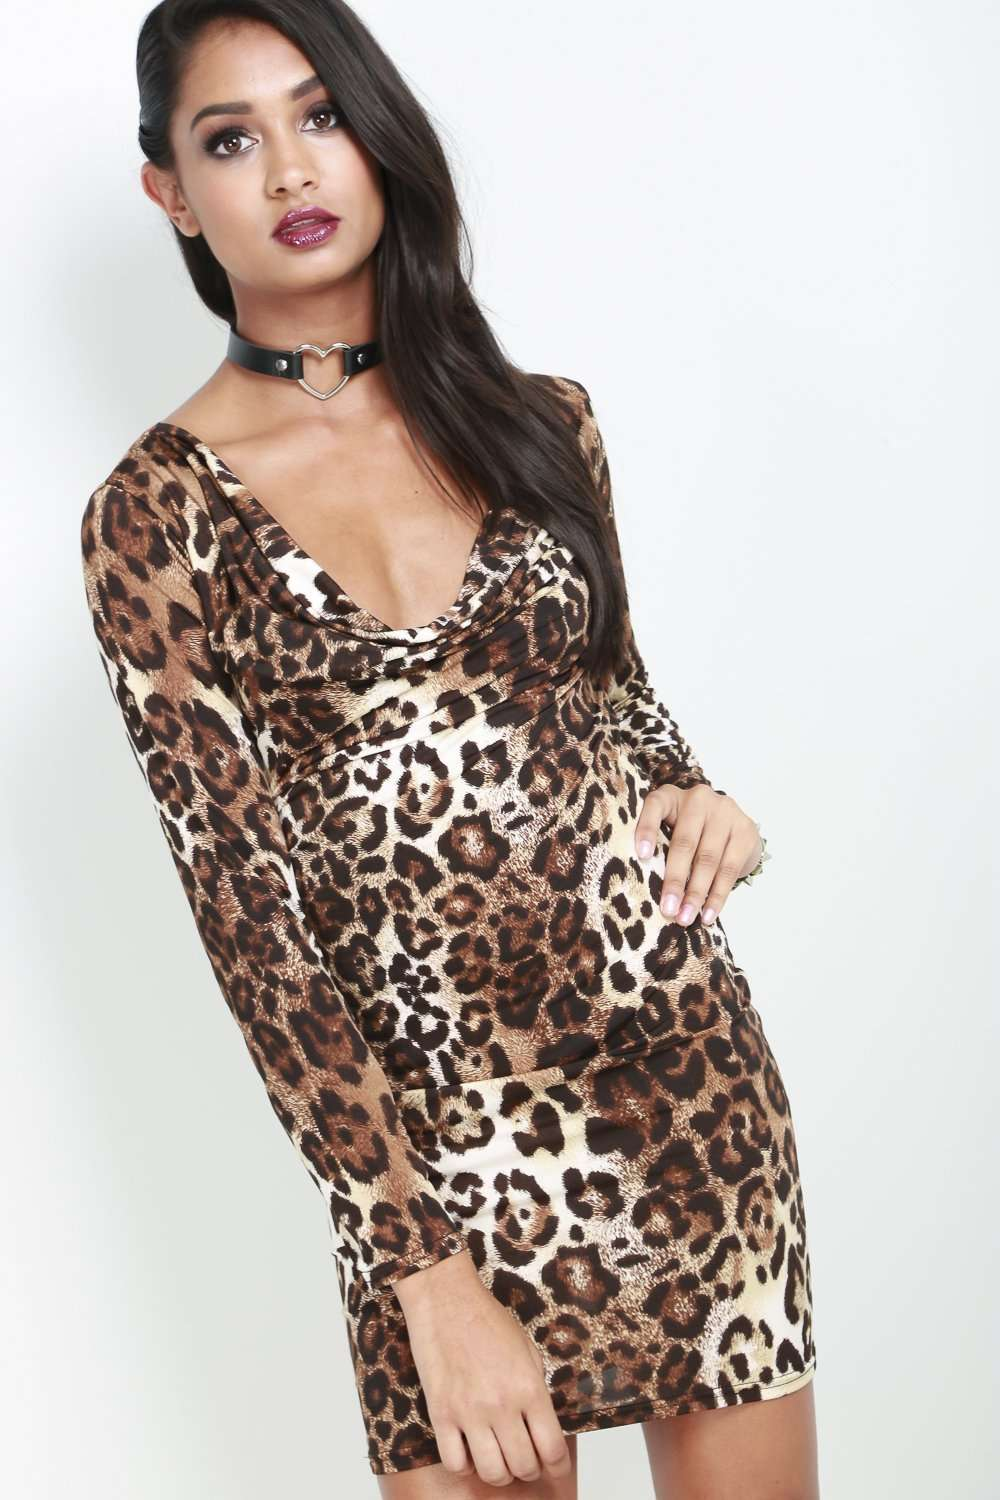 Marice Long Sleeve Leopard Print Mini Dress - bejealous-com